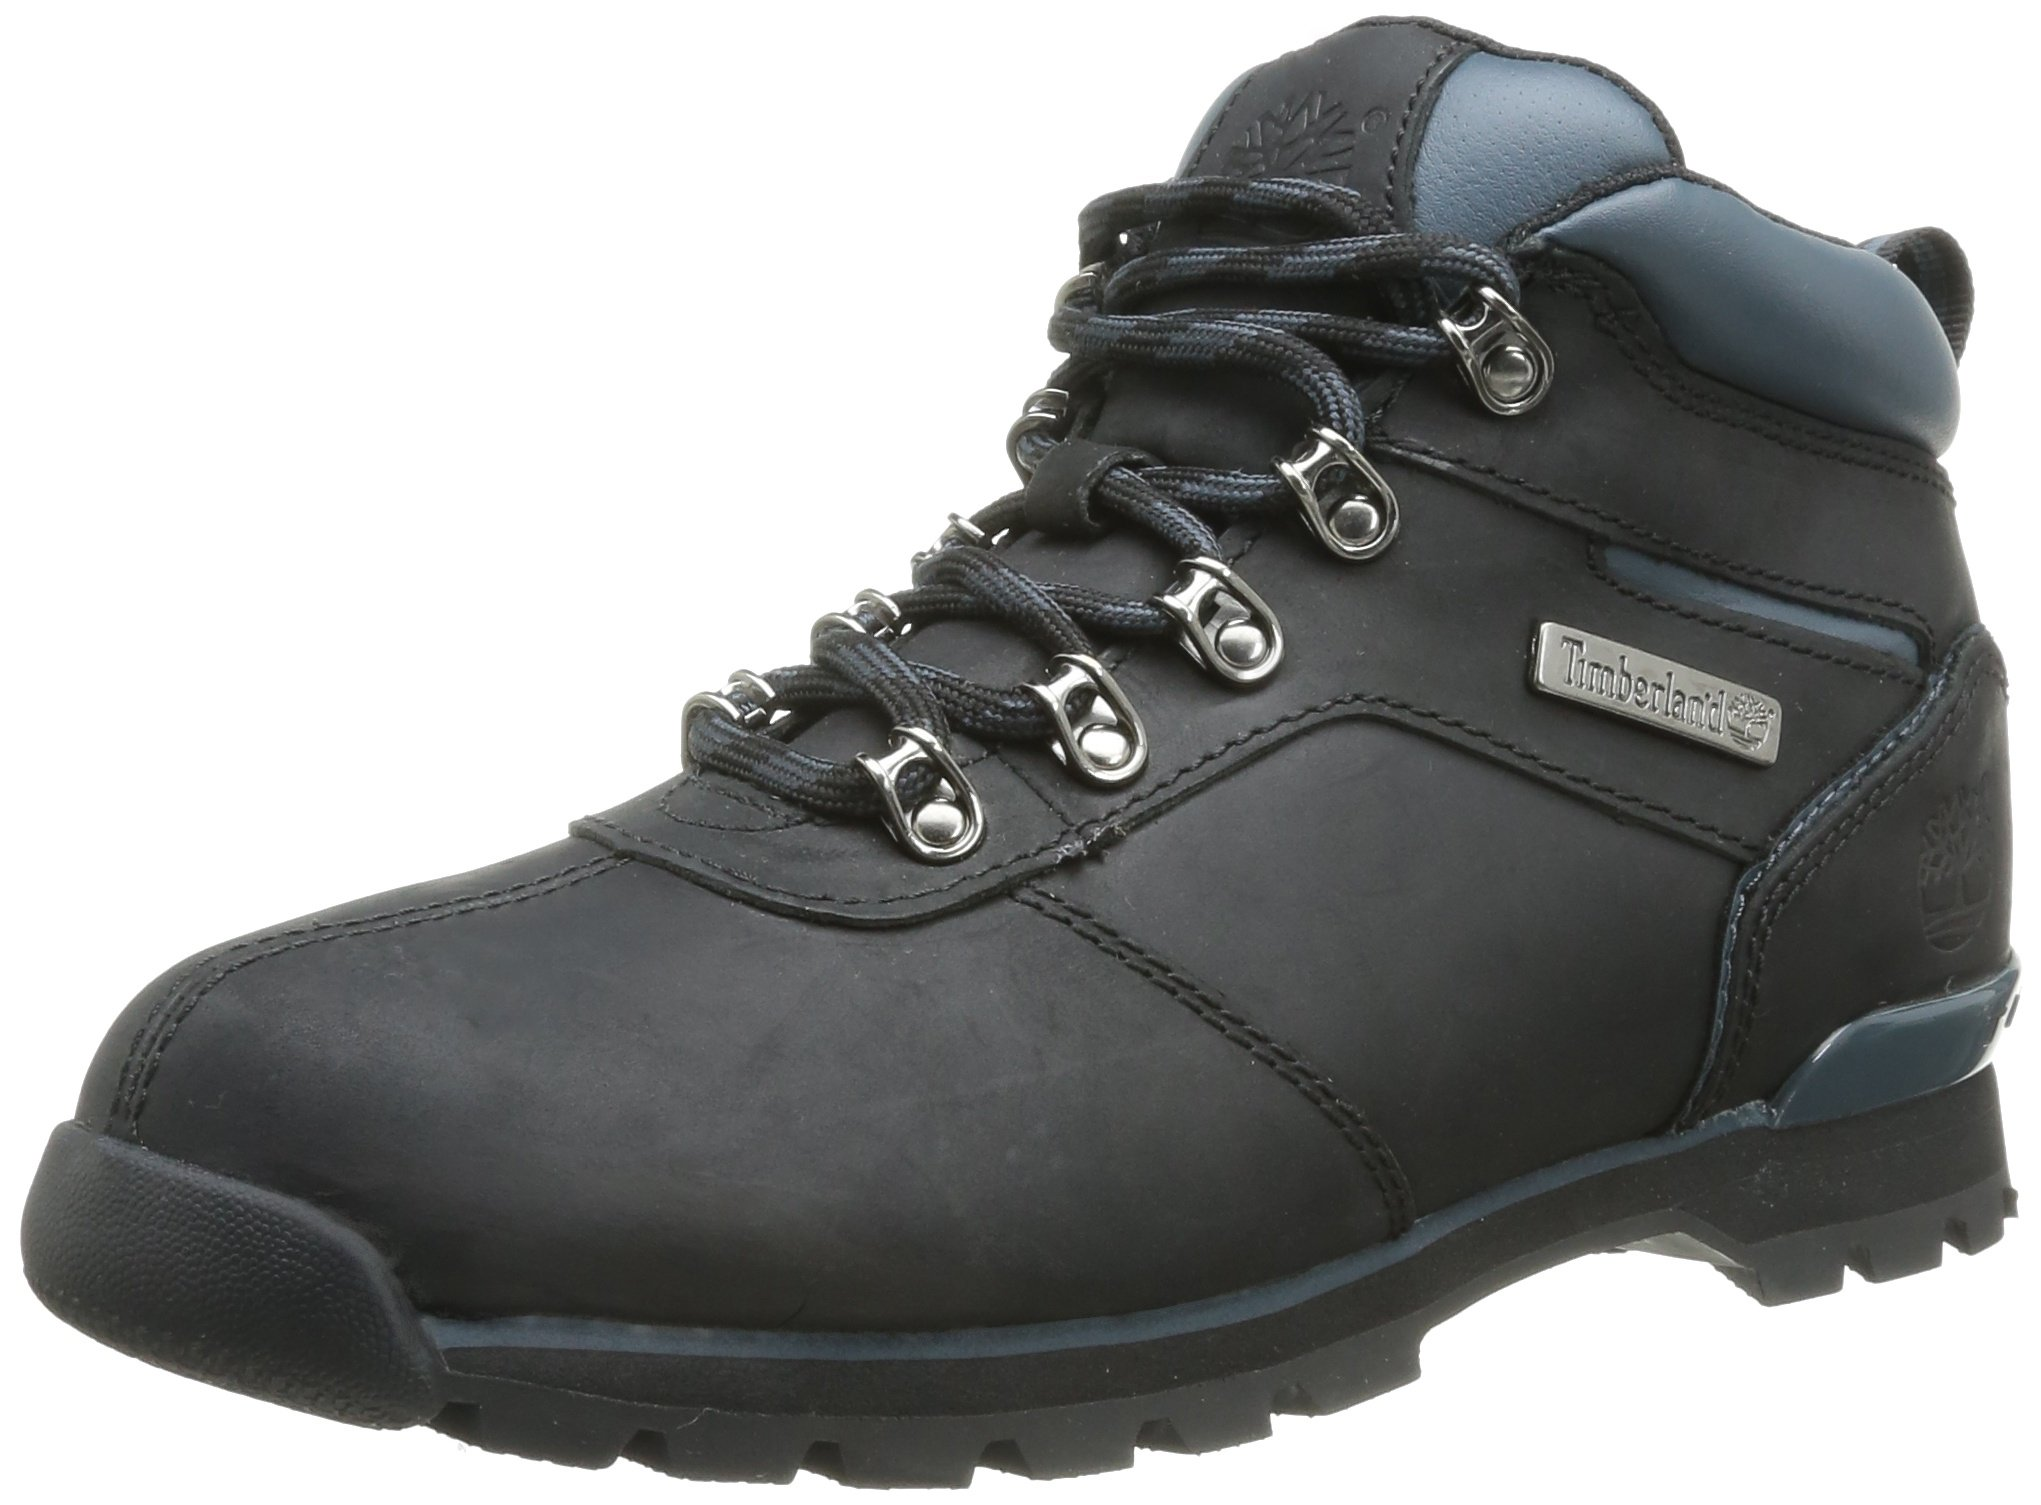 Timberland Mens Hiking Boots Size 8.5 M 6818R Splitrock 2 Black Nubuck by Timberland